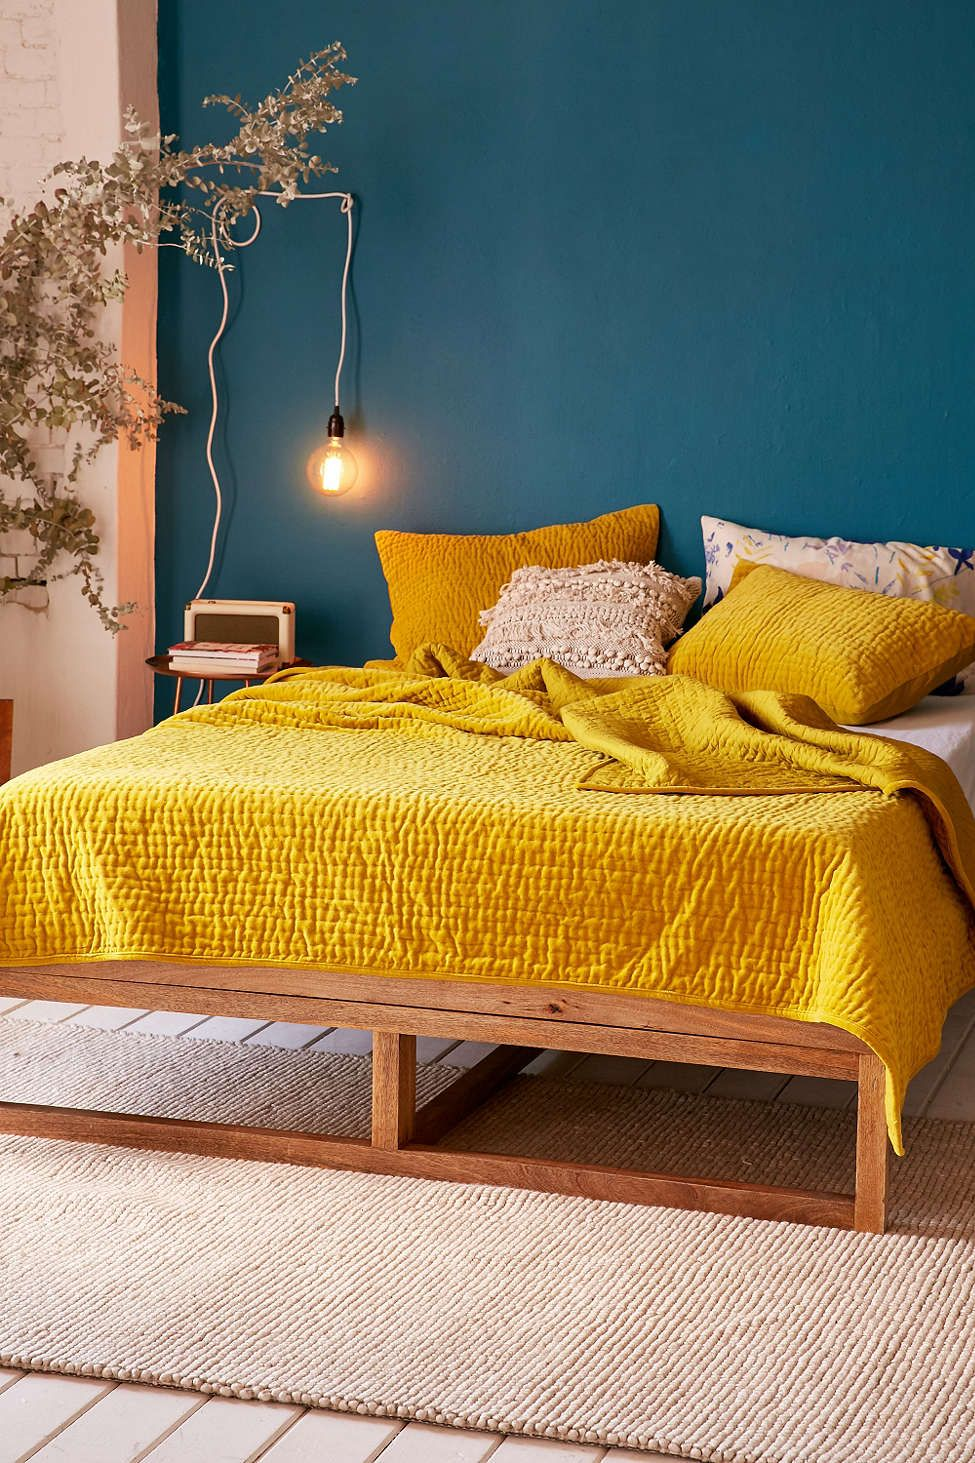 18 Ways to Decorate With the New Ochre Color Trend | Pinterest ...